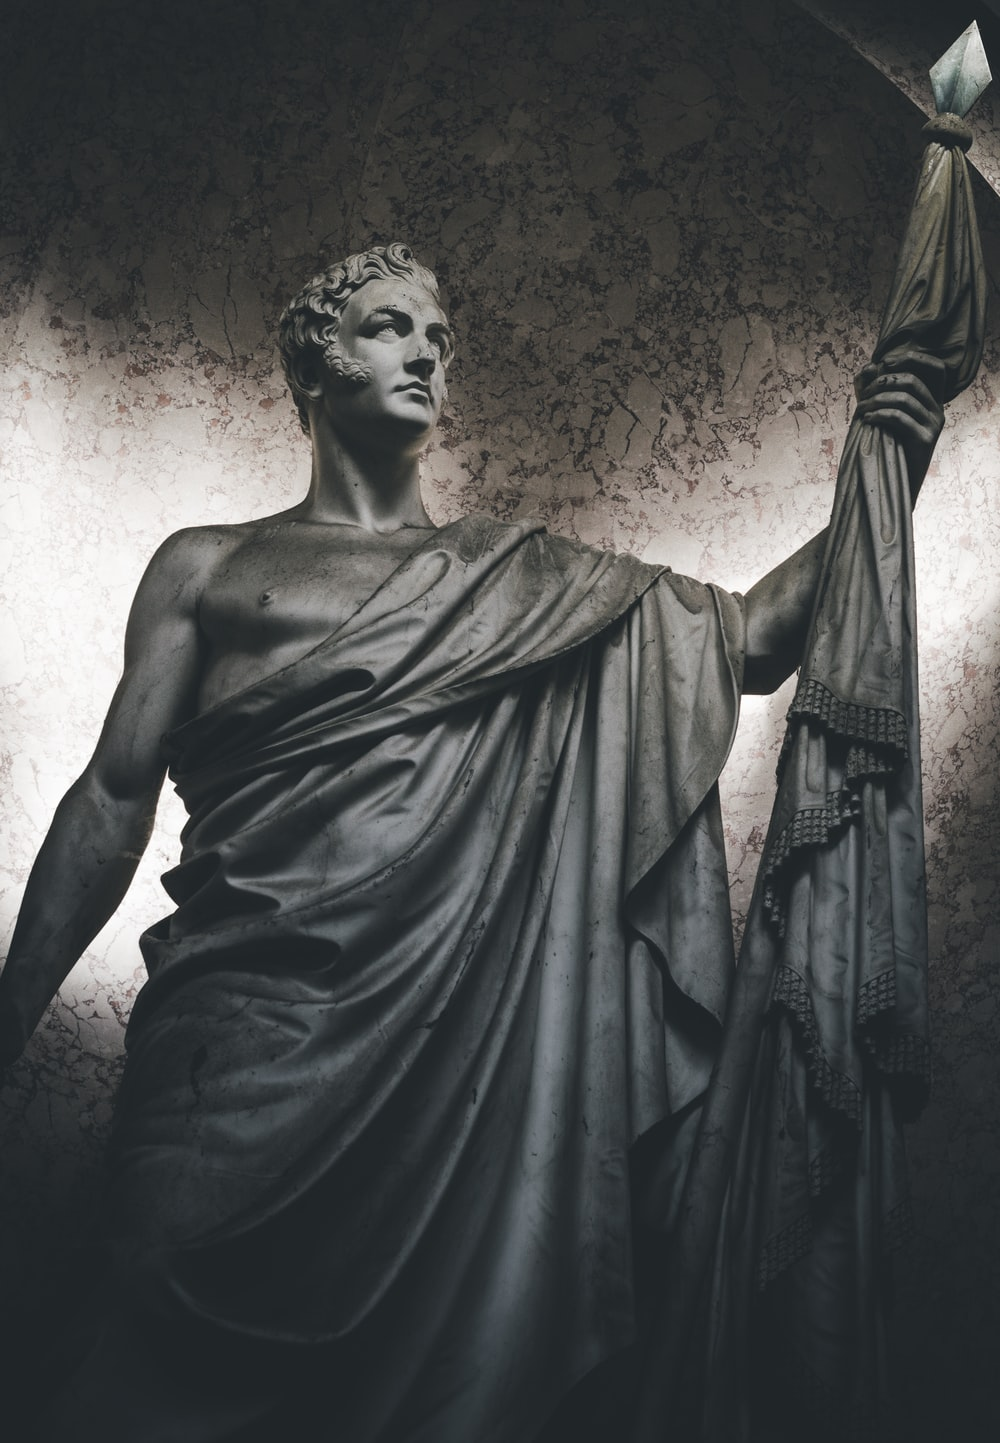 man holding spear statue